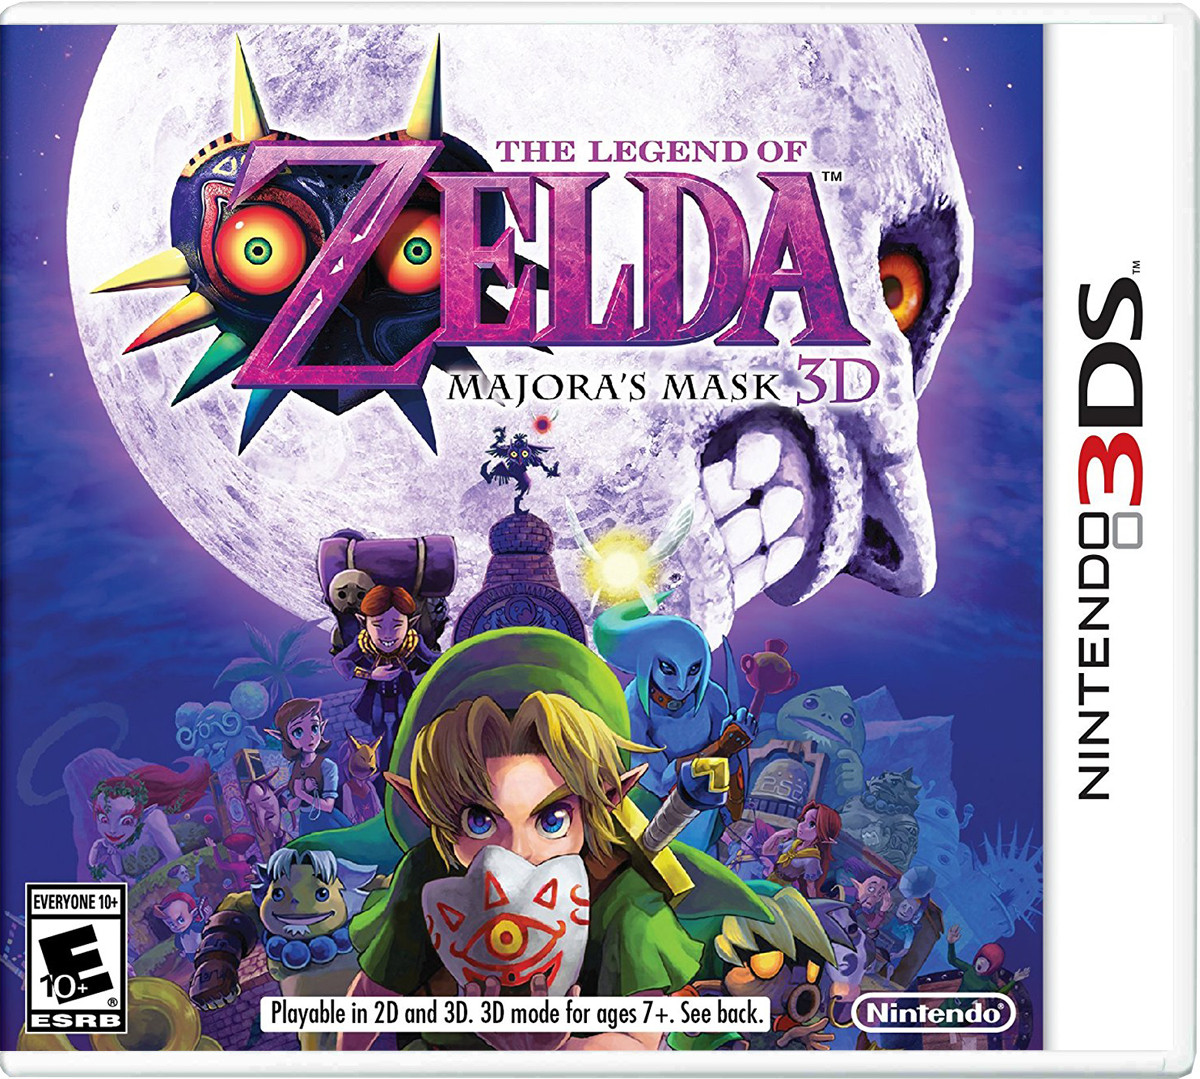 THE LEGEND OF ZELDA MAJORAS MASK